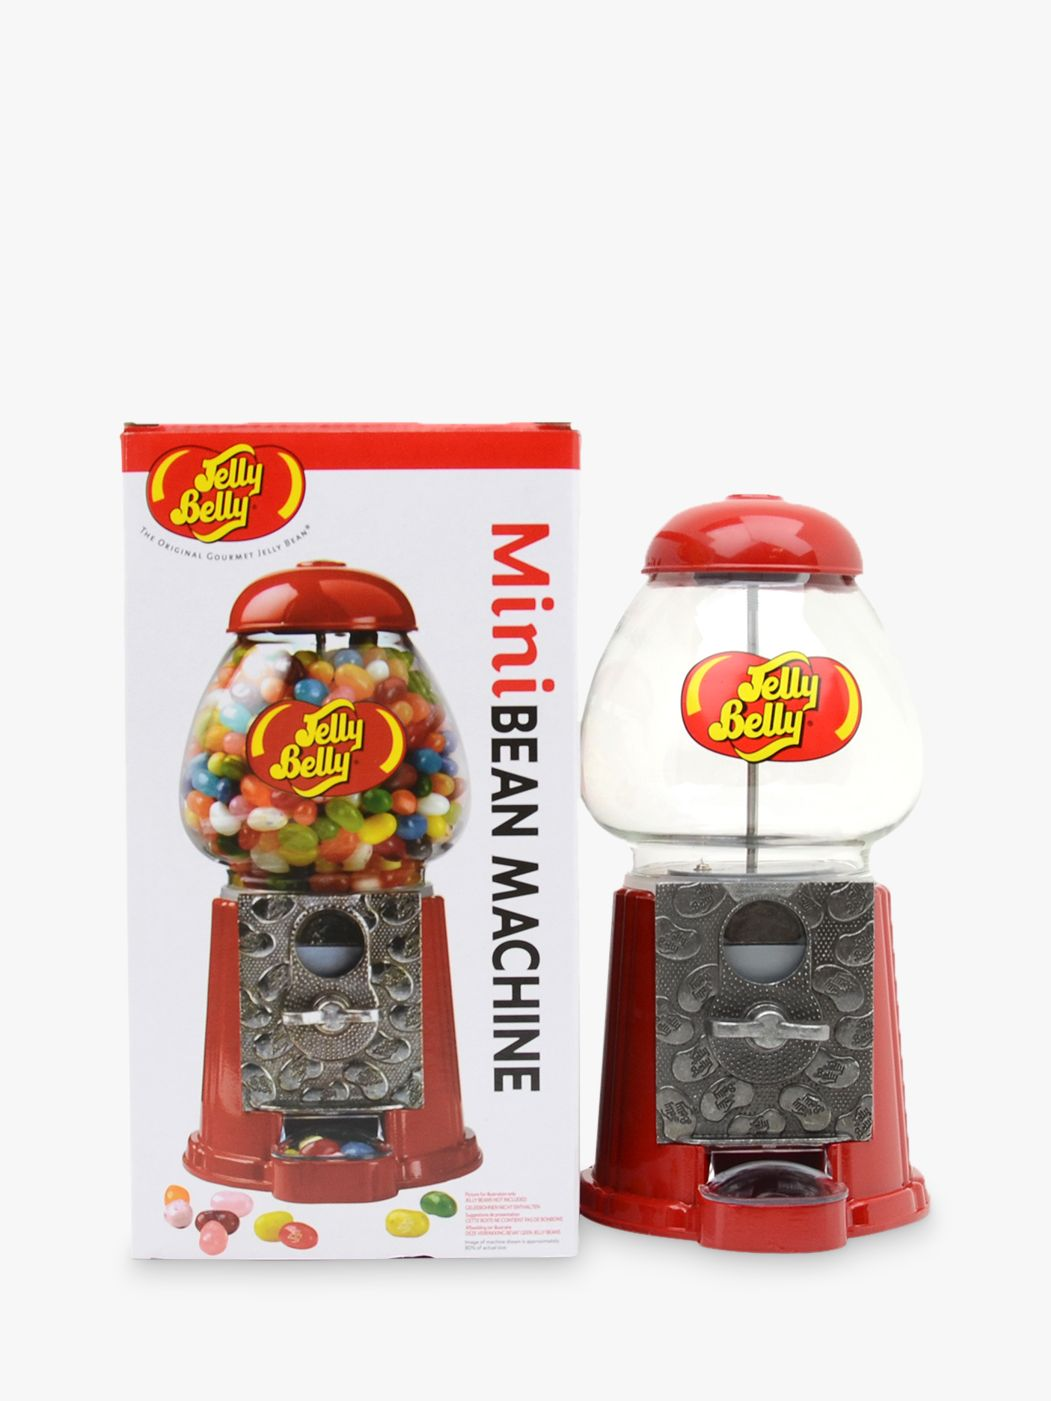 Jelly Belly Jelly Belly Sweet Machine, 650g